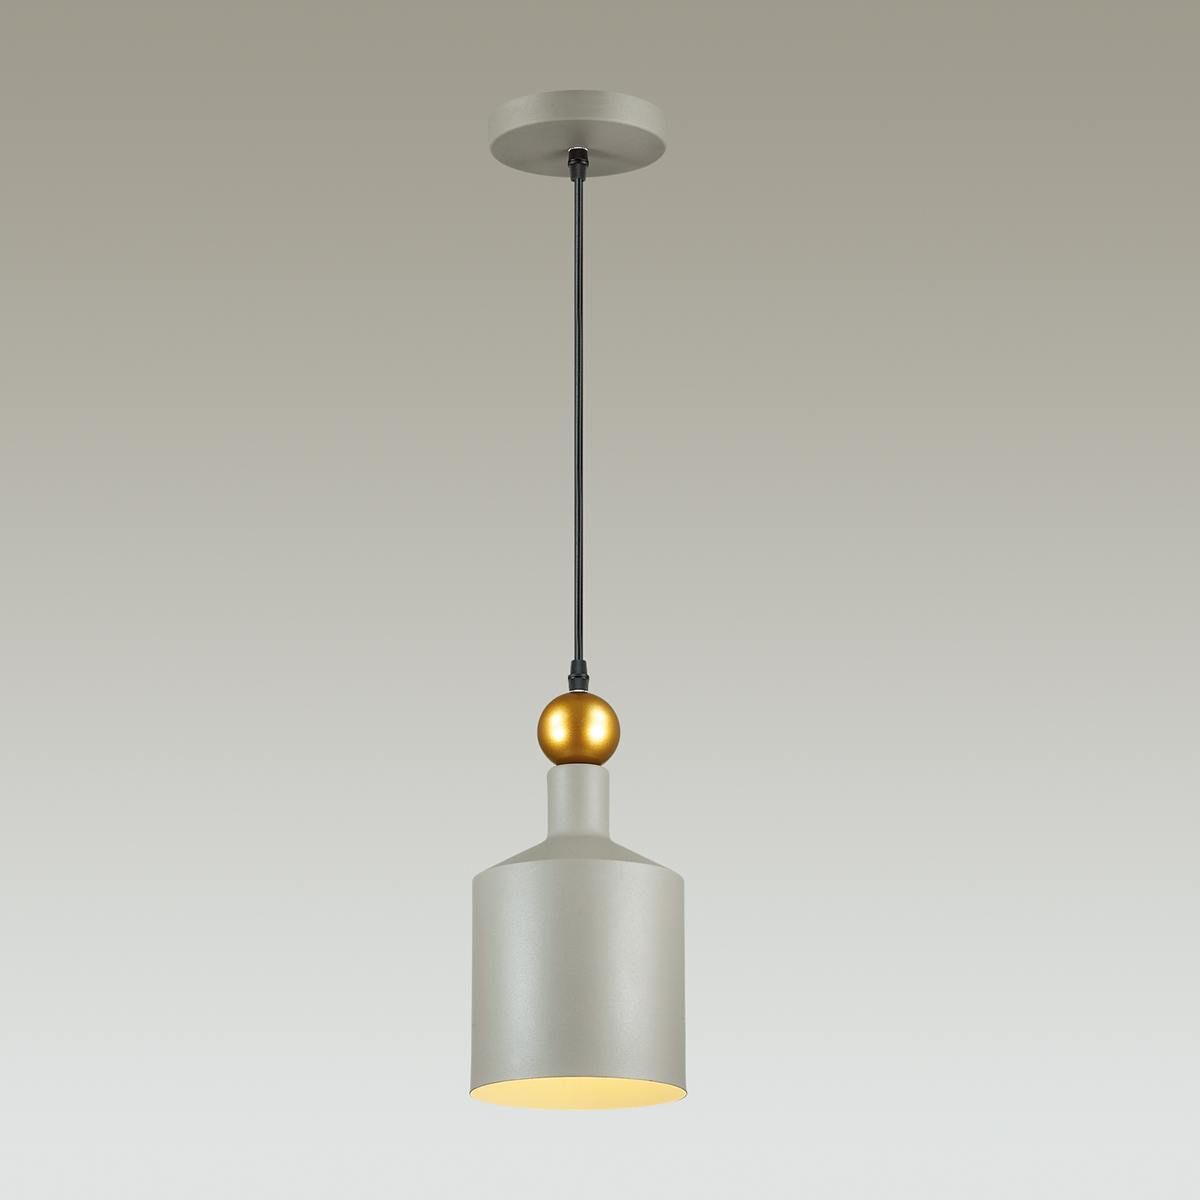 Подвес ODEON LIGHT арт. 4086/1